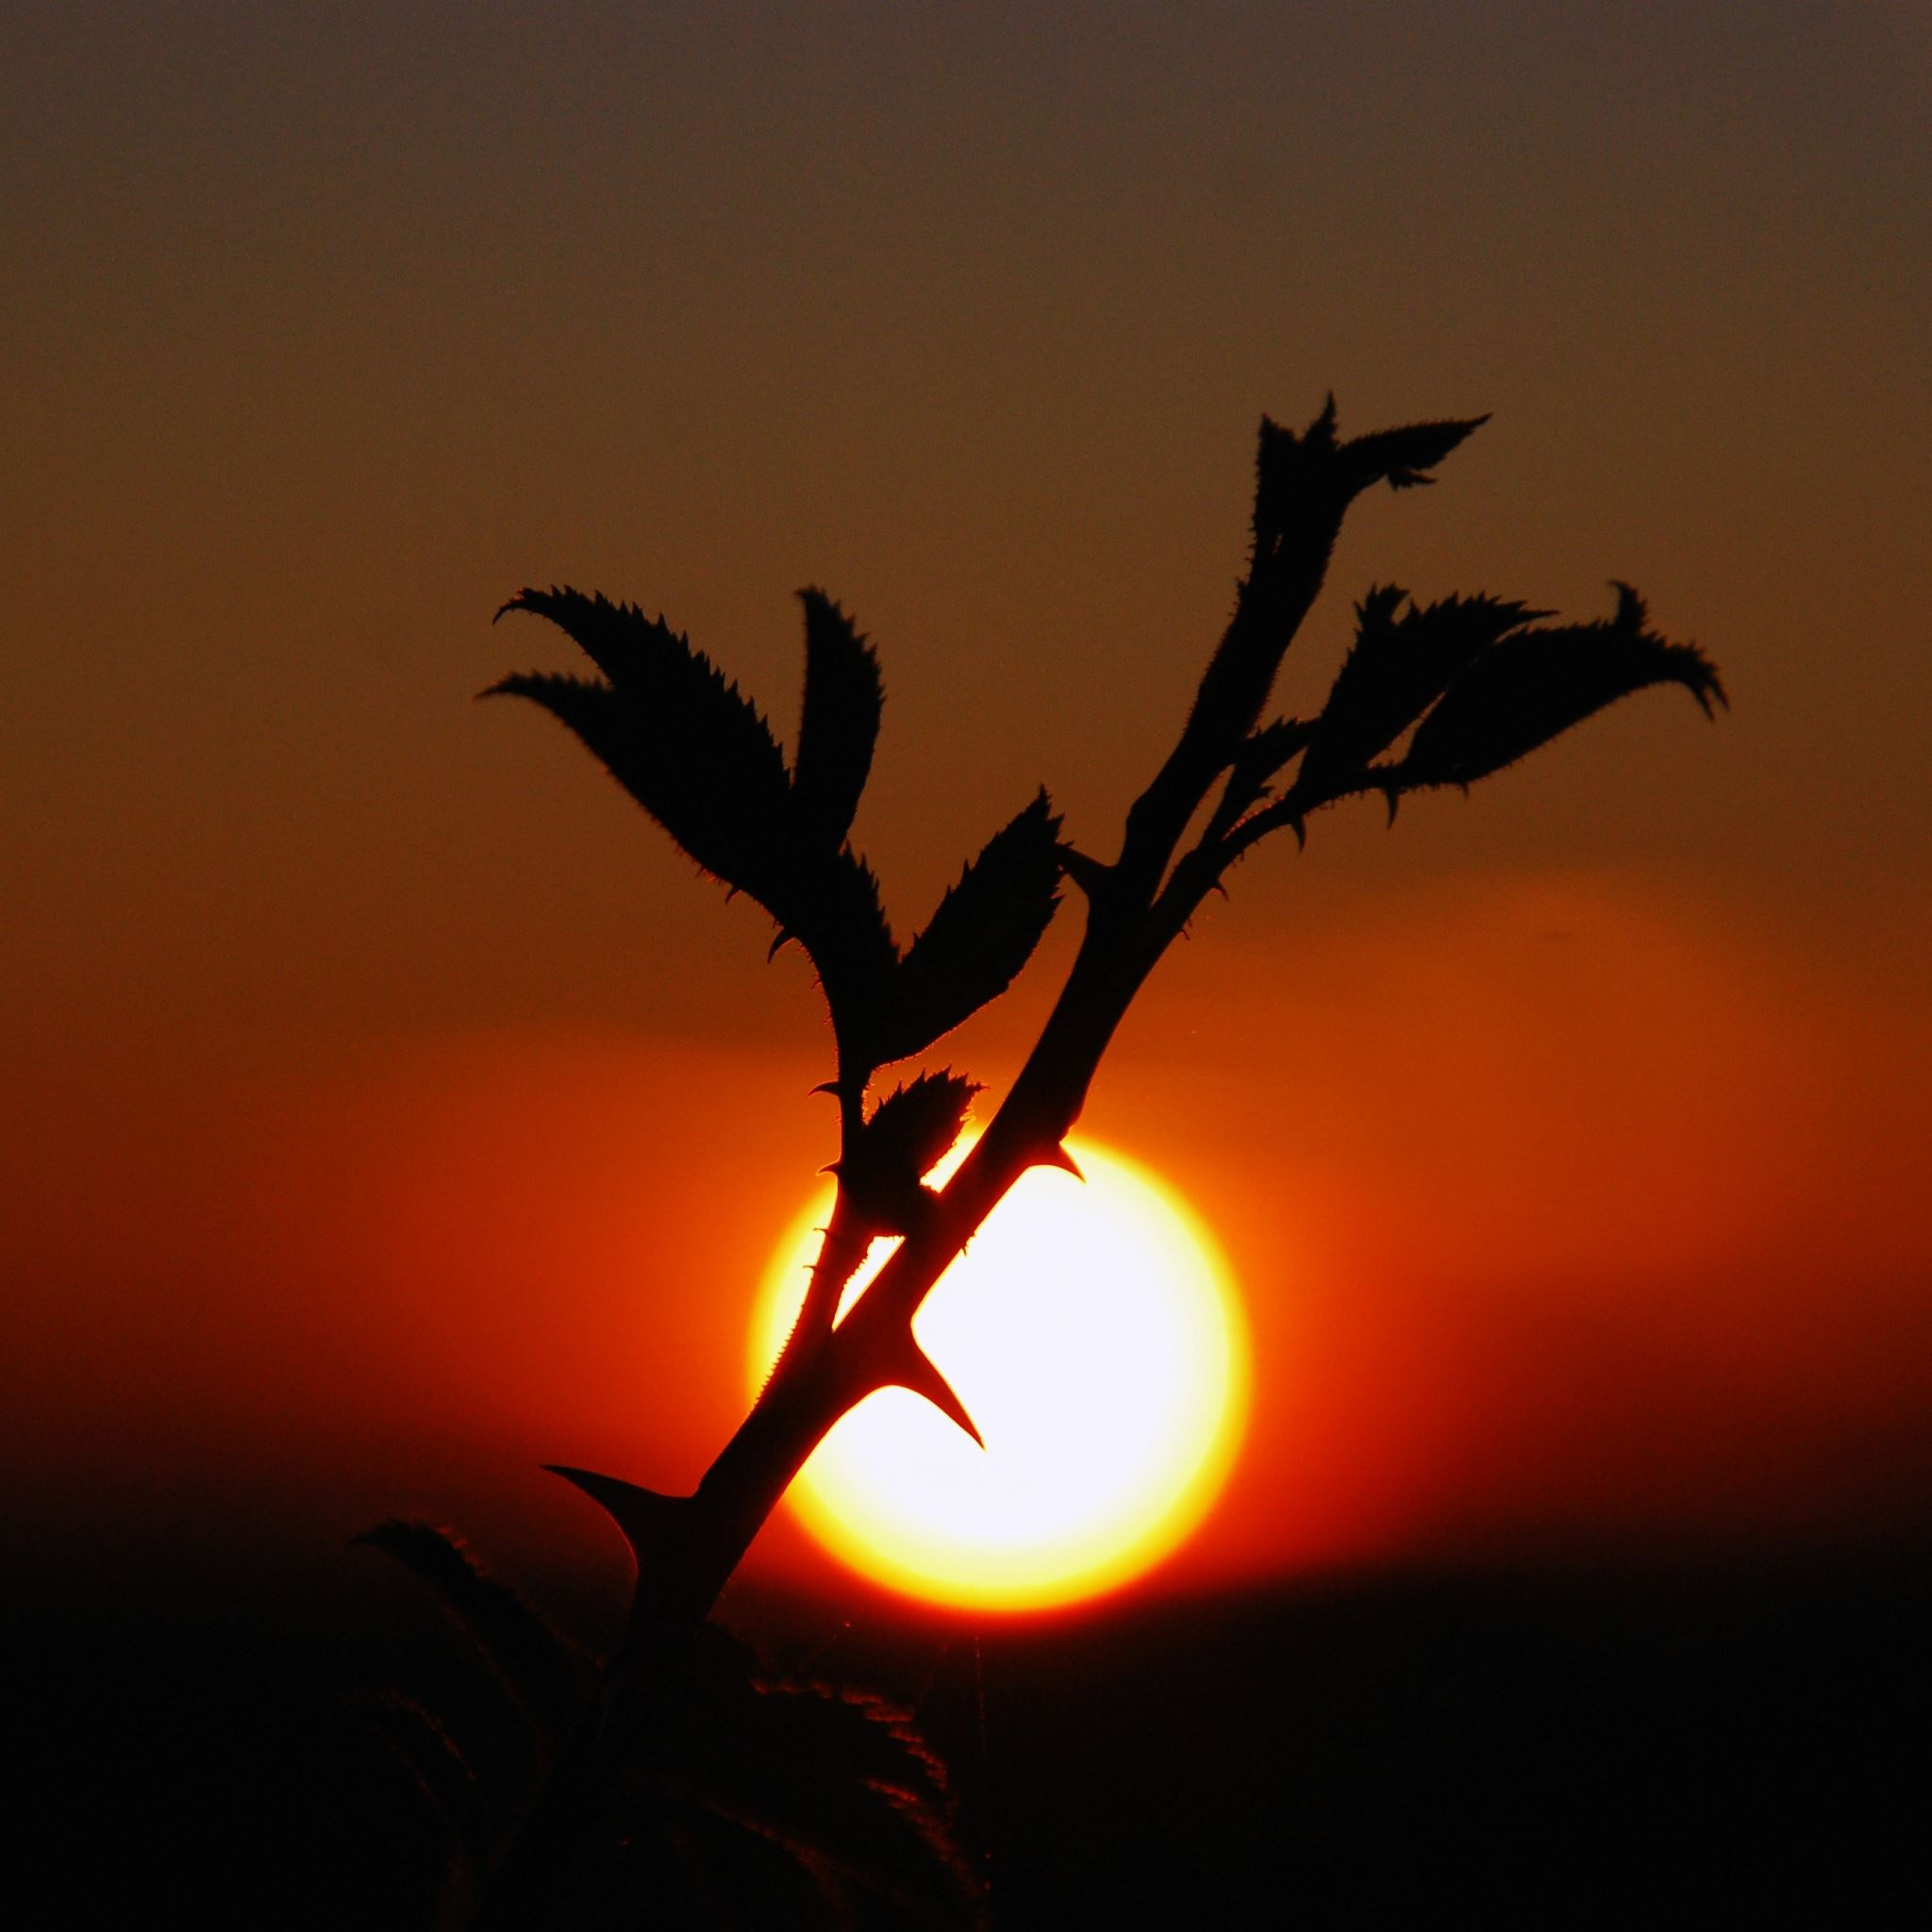 Plants Sunset Nature Sky iPad Air wallpaper